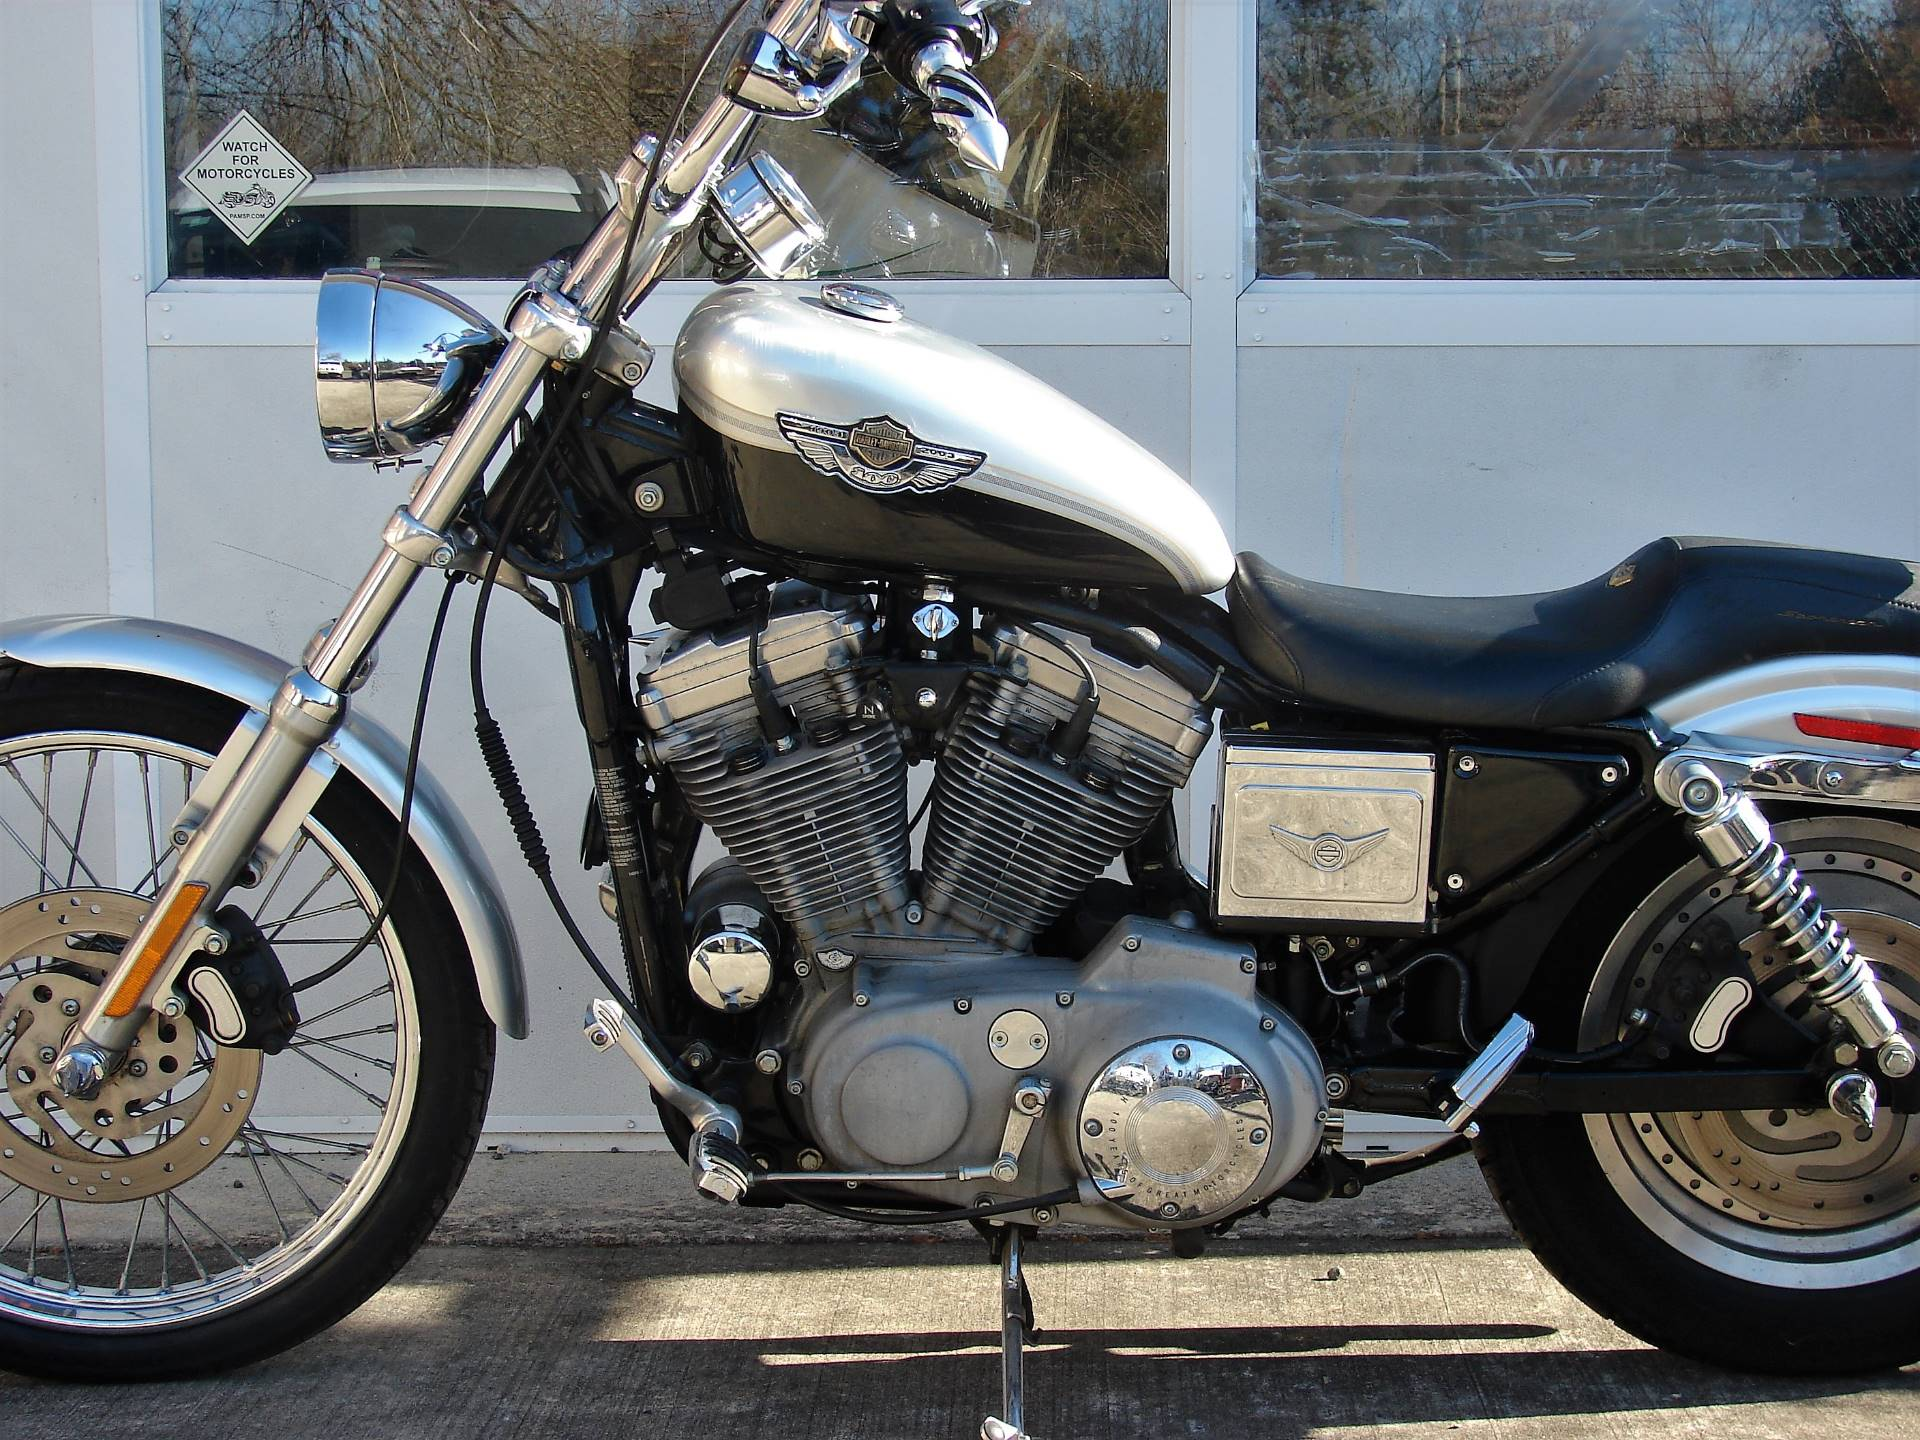 2003 Harley-Davidson XLH 883 Sportster (Anniversary Edition) (Silver & Black) in Williamstown, New Jersey - Photo 7